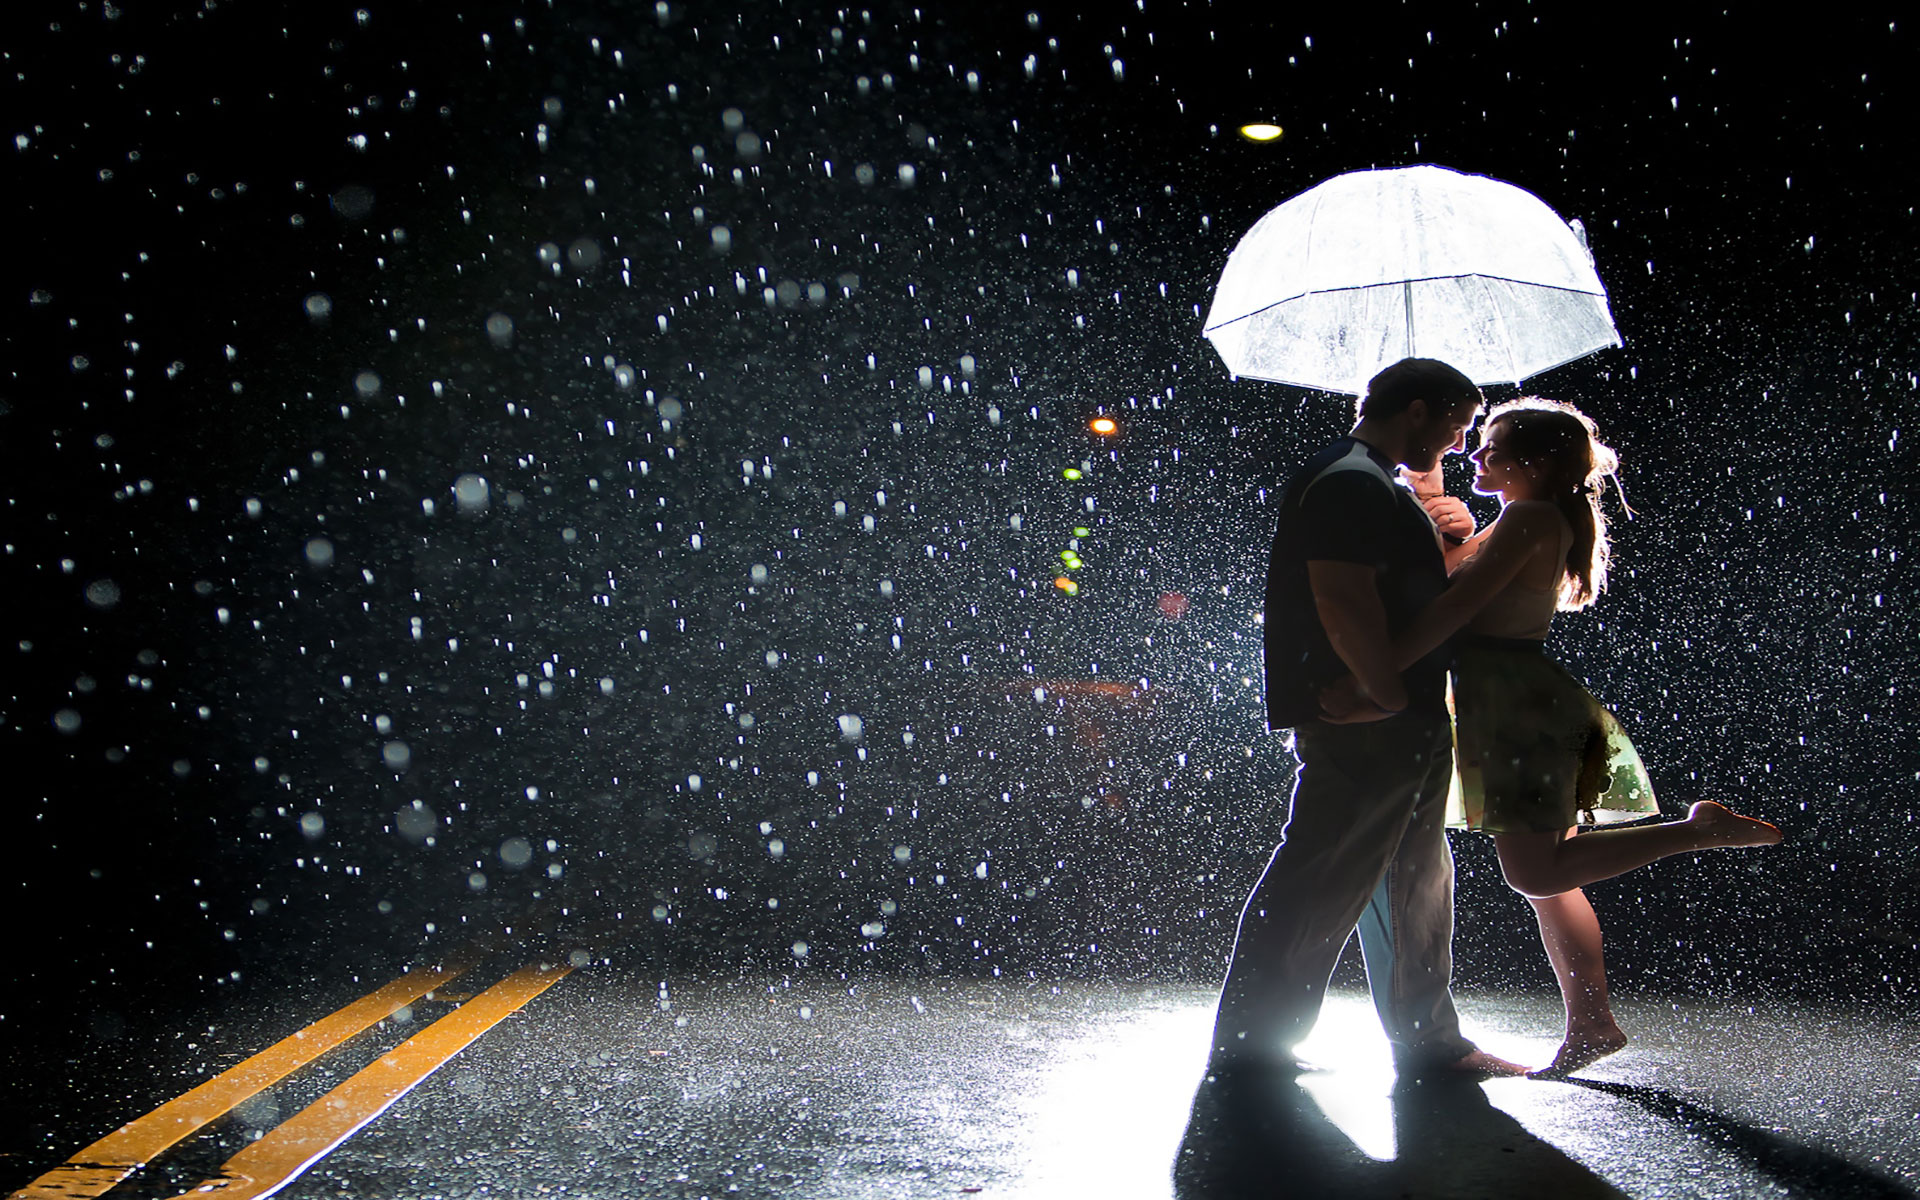 Love Wallpaper In Rain : 20+ Love couple s Romance in the Rain Wallpapers